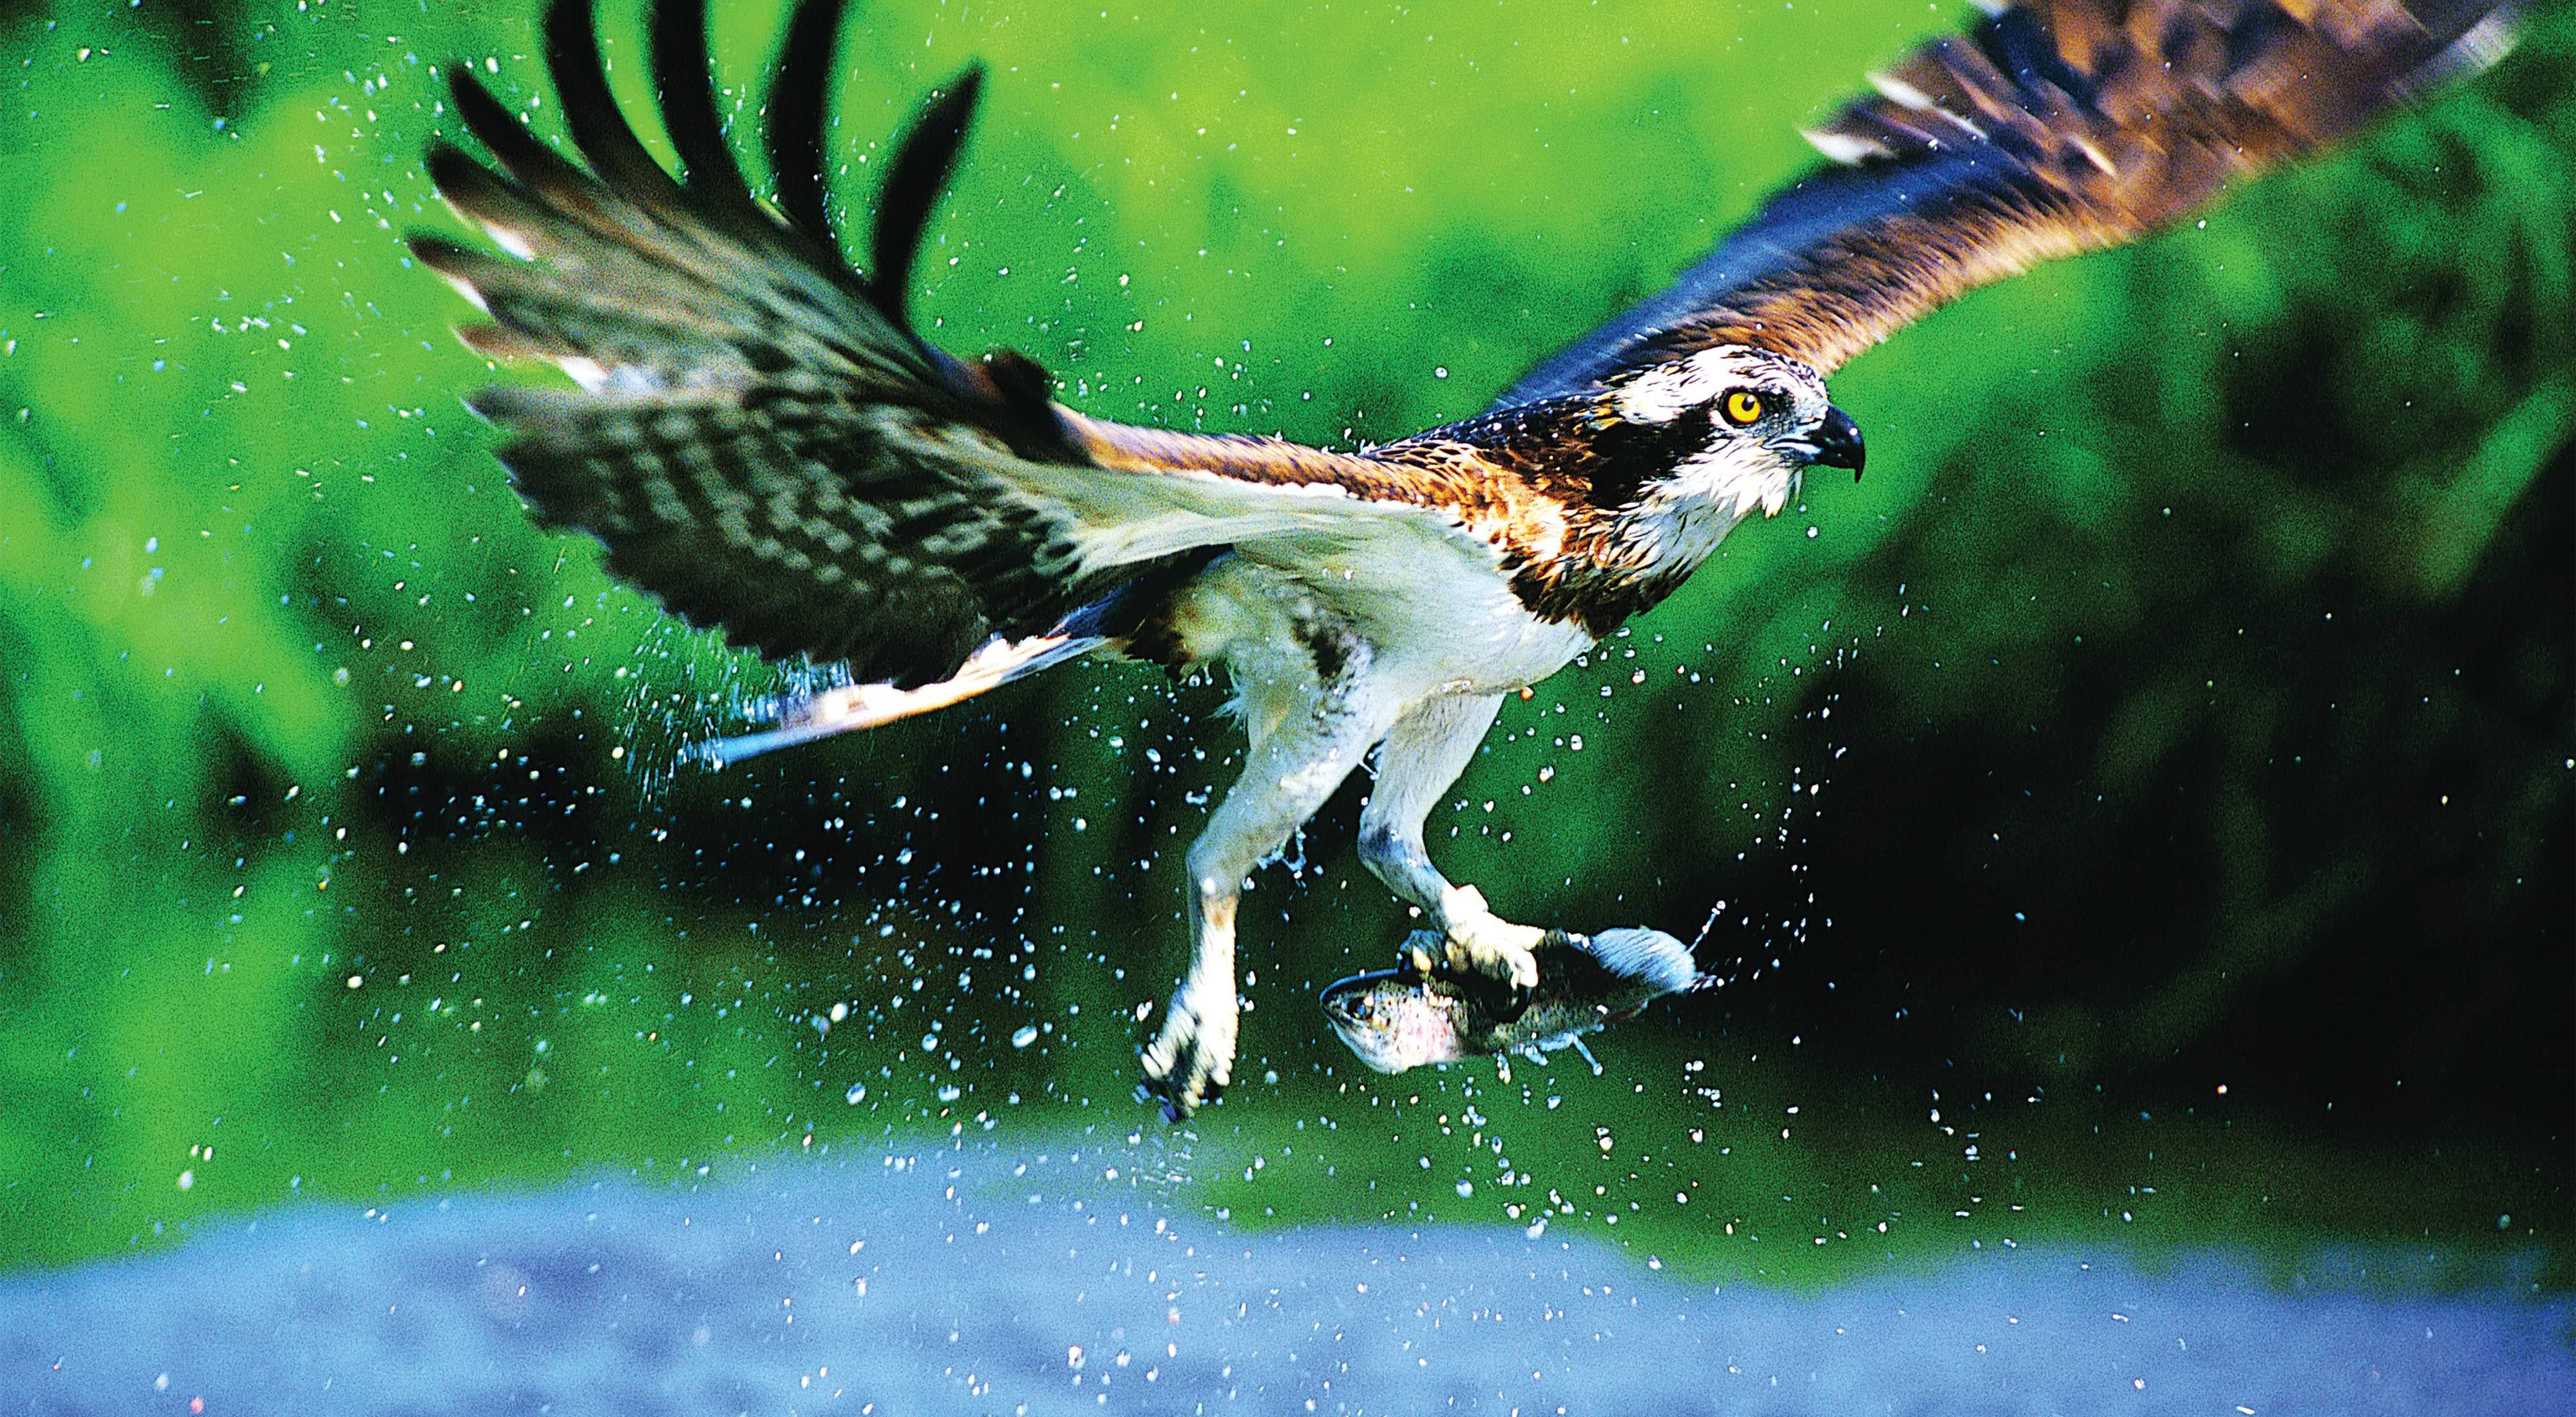 An osprey carrying a fish in its talons.